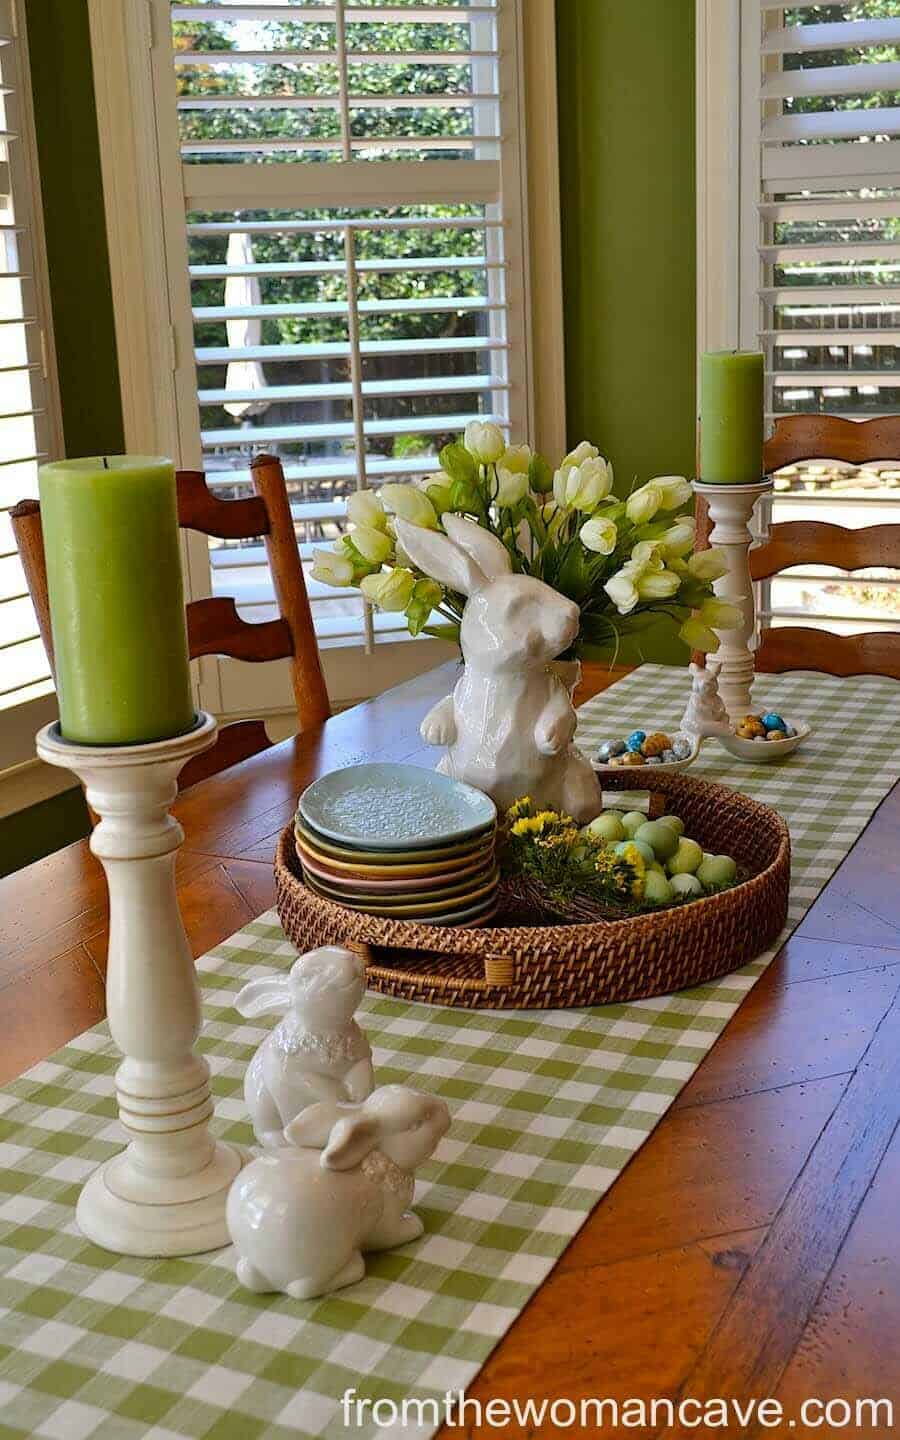 Inspiring Easter Table Centerpiece Ideas-17-1 Kindesign